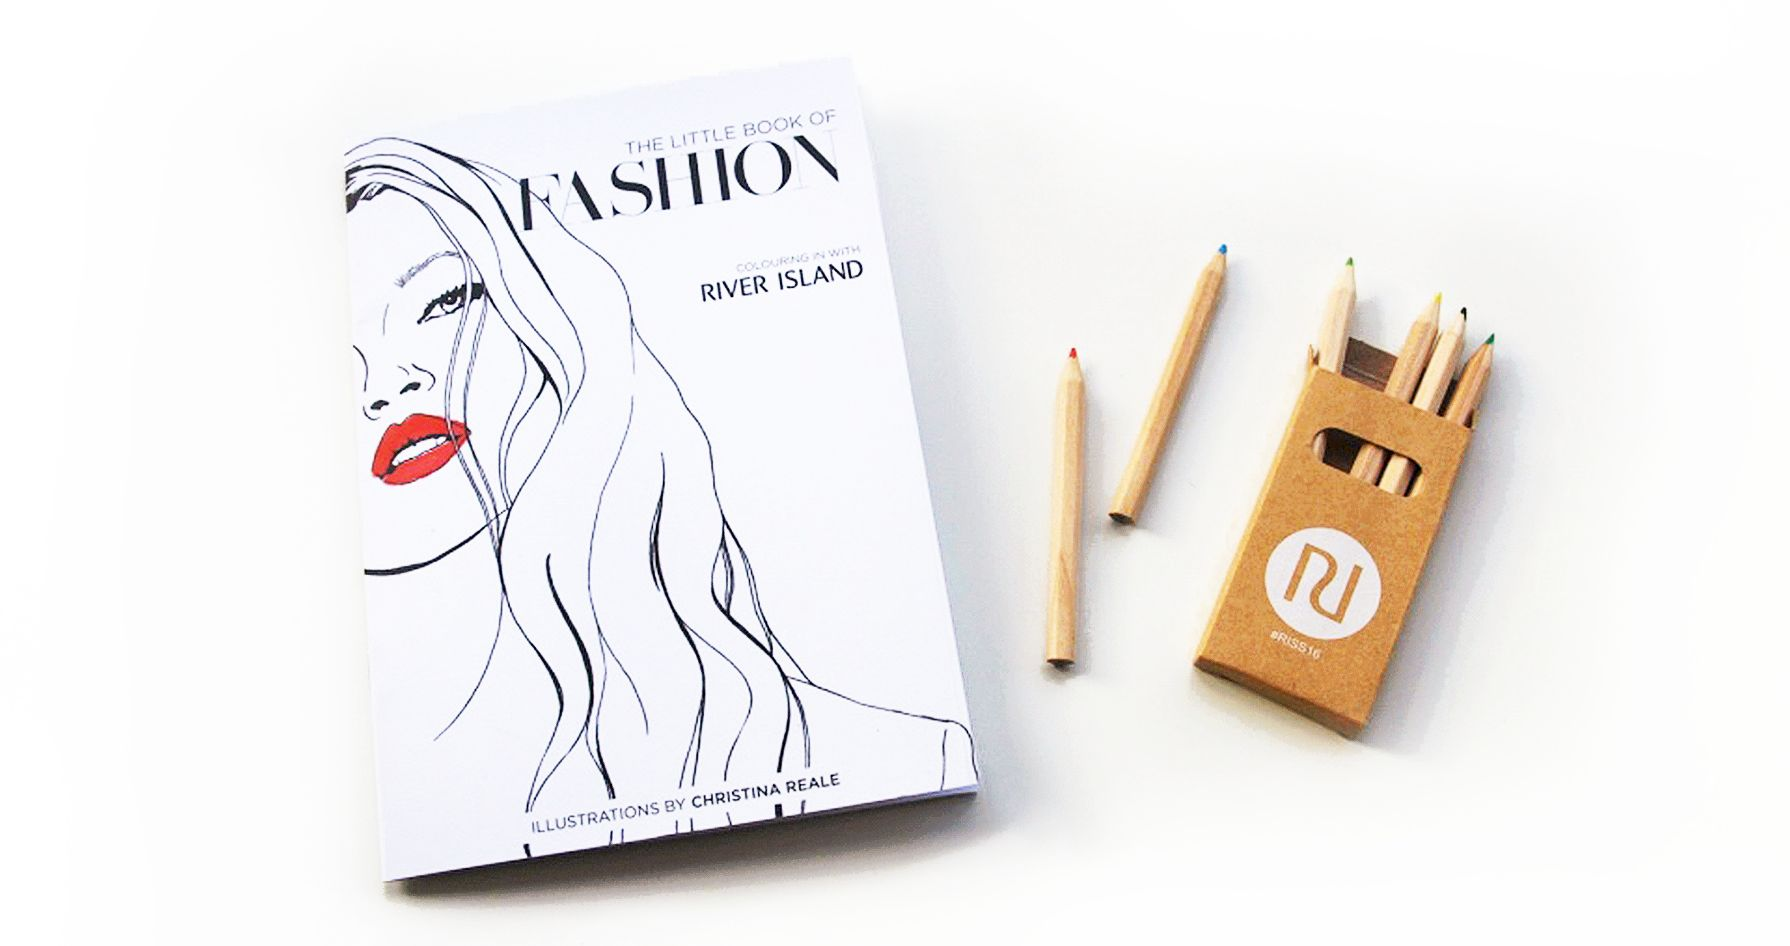 DOWNLOAD RIVER ISLANDS SS16 COLOURING BOOK: THE LITTLE BOOK OF FASHION